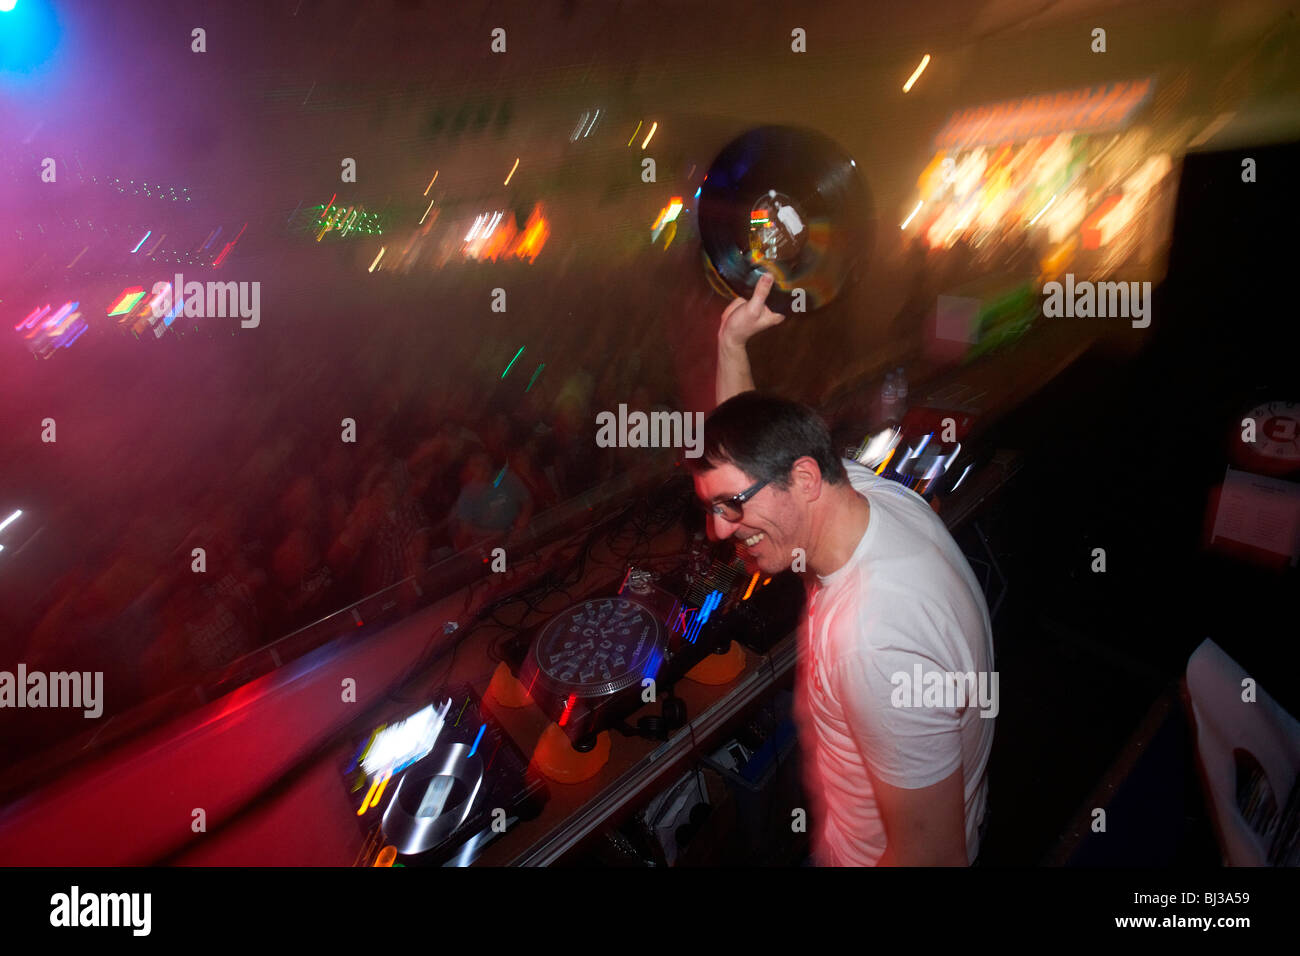 DJ Dr. Motte, Winter World 2010, techno festival in Sports Hall Oberwerth, Koblenz, Rhineland-Palatinate, Germany, - Stock Image